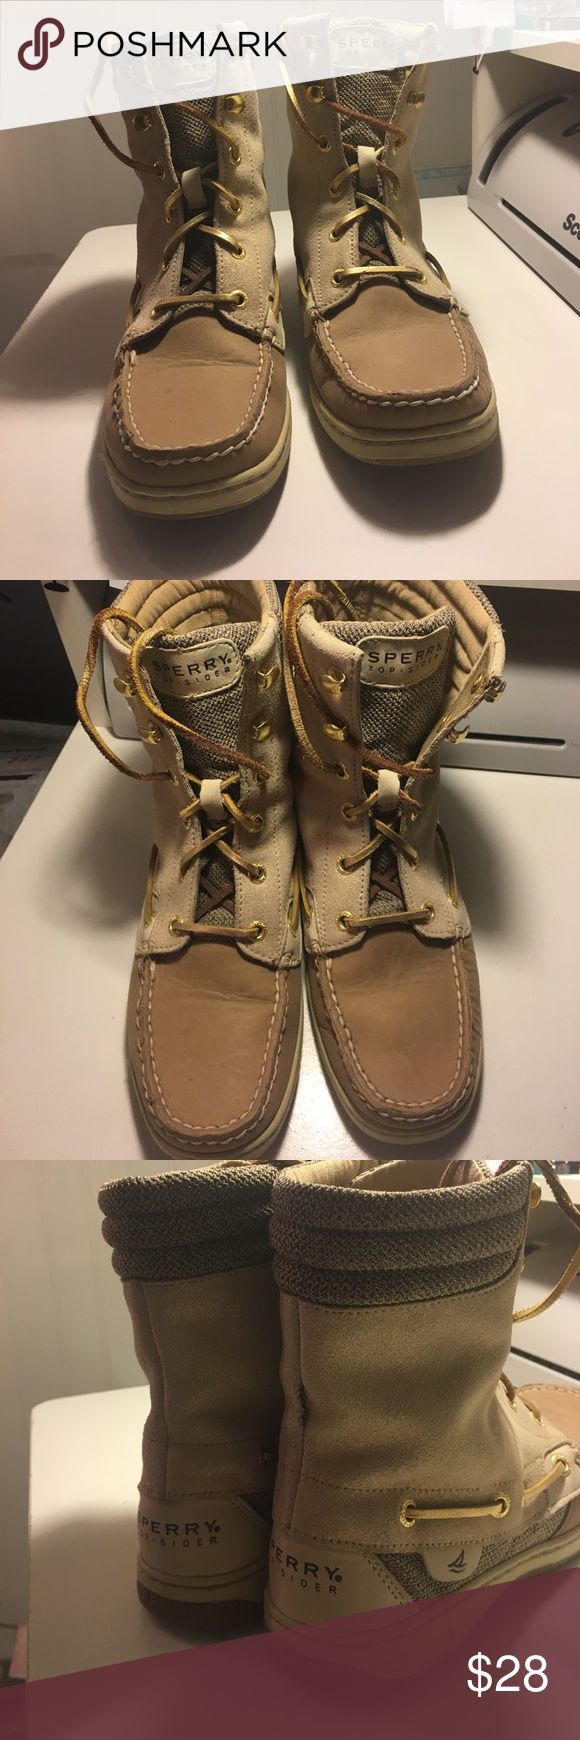 Sperry Top-Sider Boots Original Sperry Top-Sider boots! Worn, but still great condition, except for one little rip in the seam on the back right boot-not all that noticeable, but shown in the last picture! Sperry Top-Sider Shoes Ankle Boots & Booties